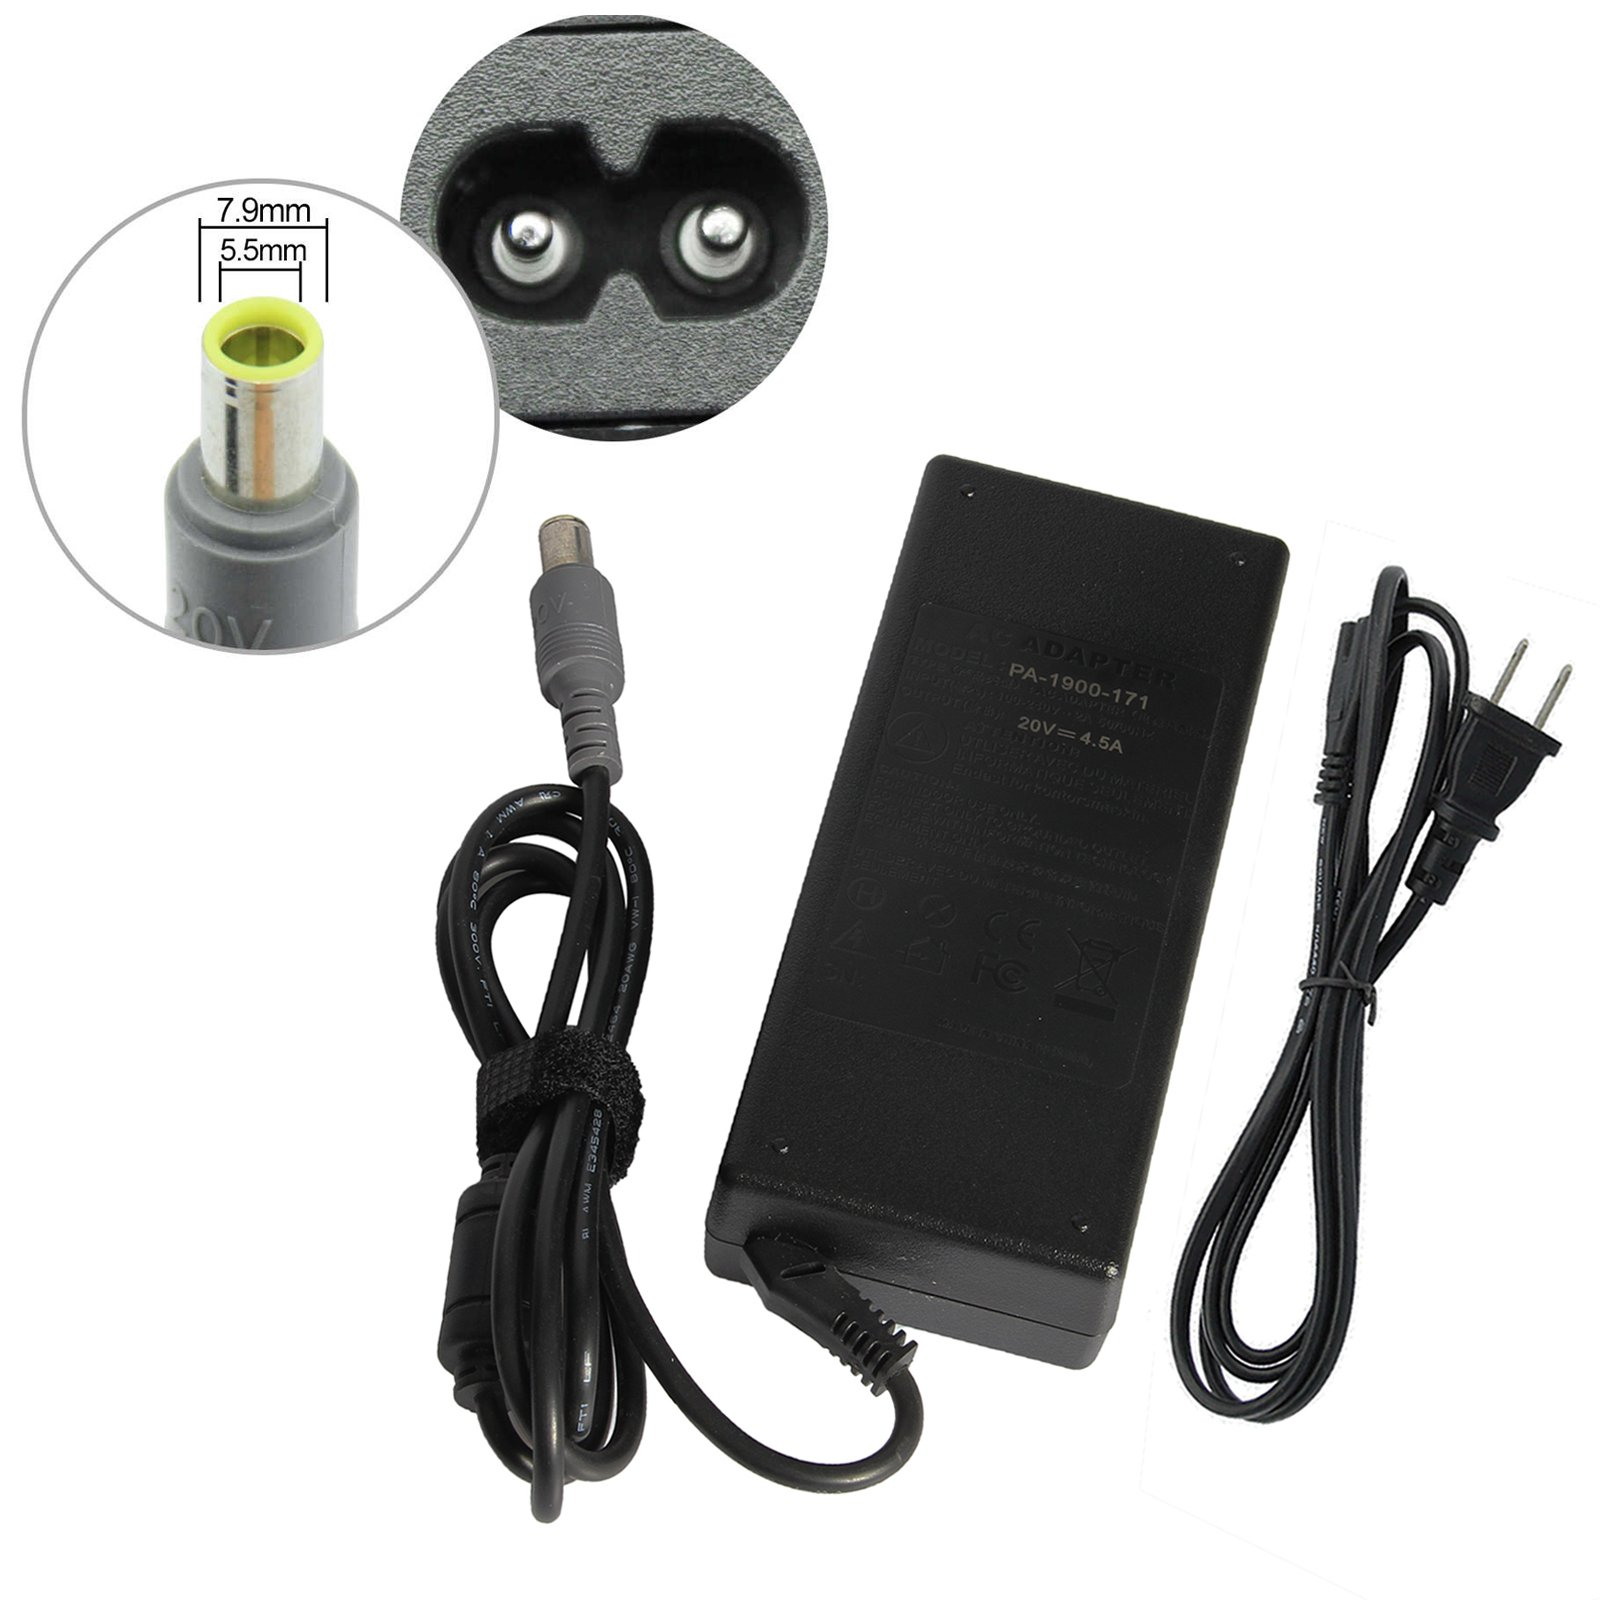 Fancy Buying AC Adapter Power Charger For LENOVO ThinkPad E40 E50 L410 L412 L420 L421 L510 L512 L520 SL410 SL410 SL410k T410 T410i T420 T510 T510i T520 T520i SL510 X 100e X120e X121e X130e